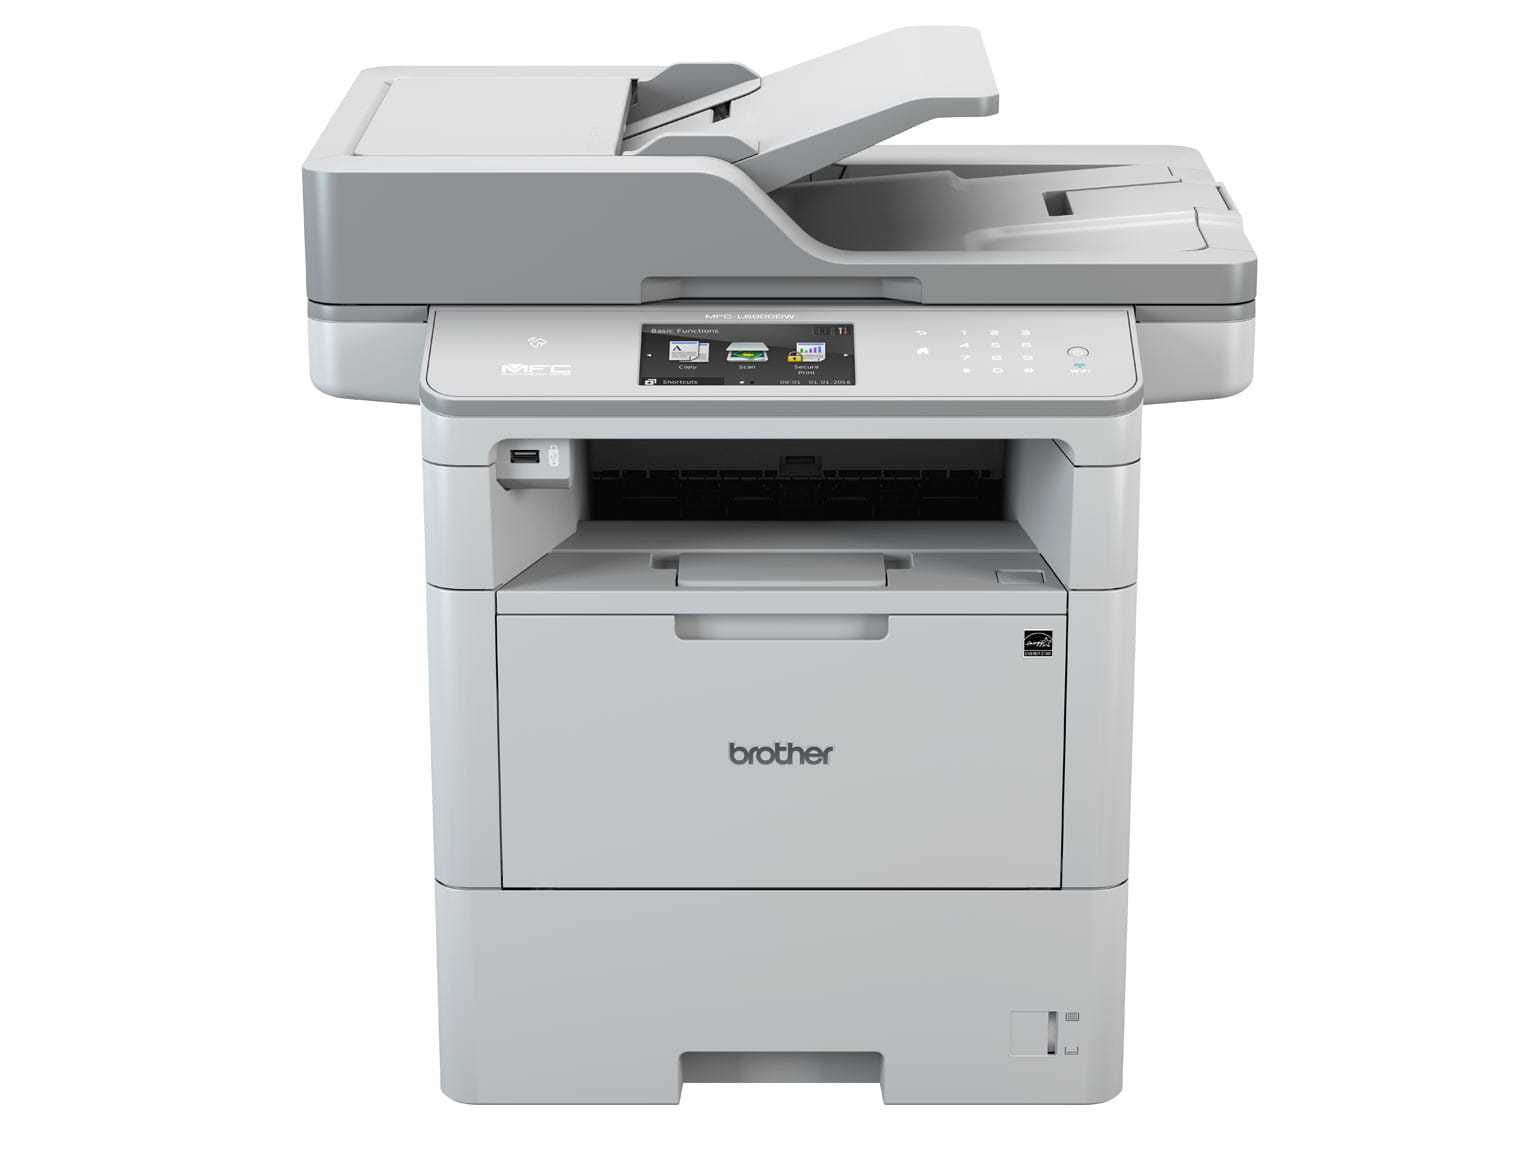 Brother-MFC-L6900DW-for-office-printers